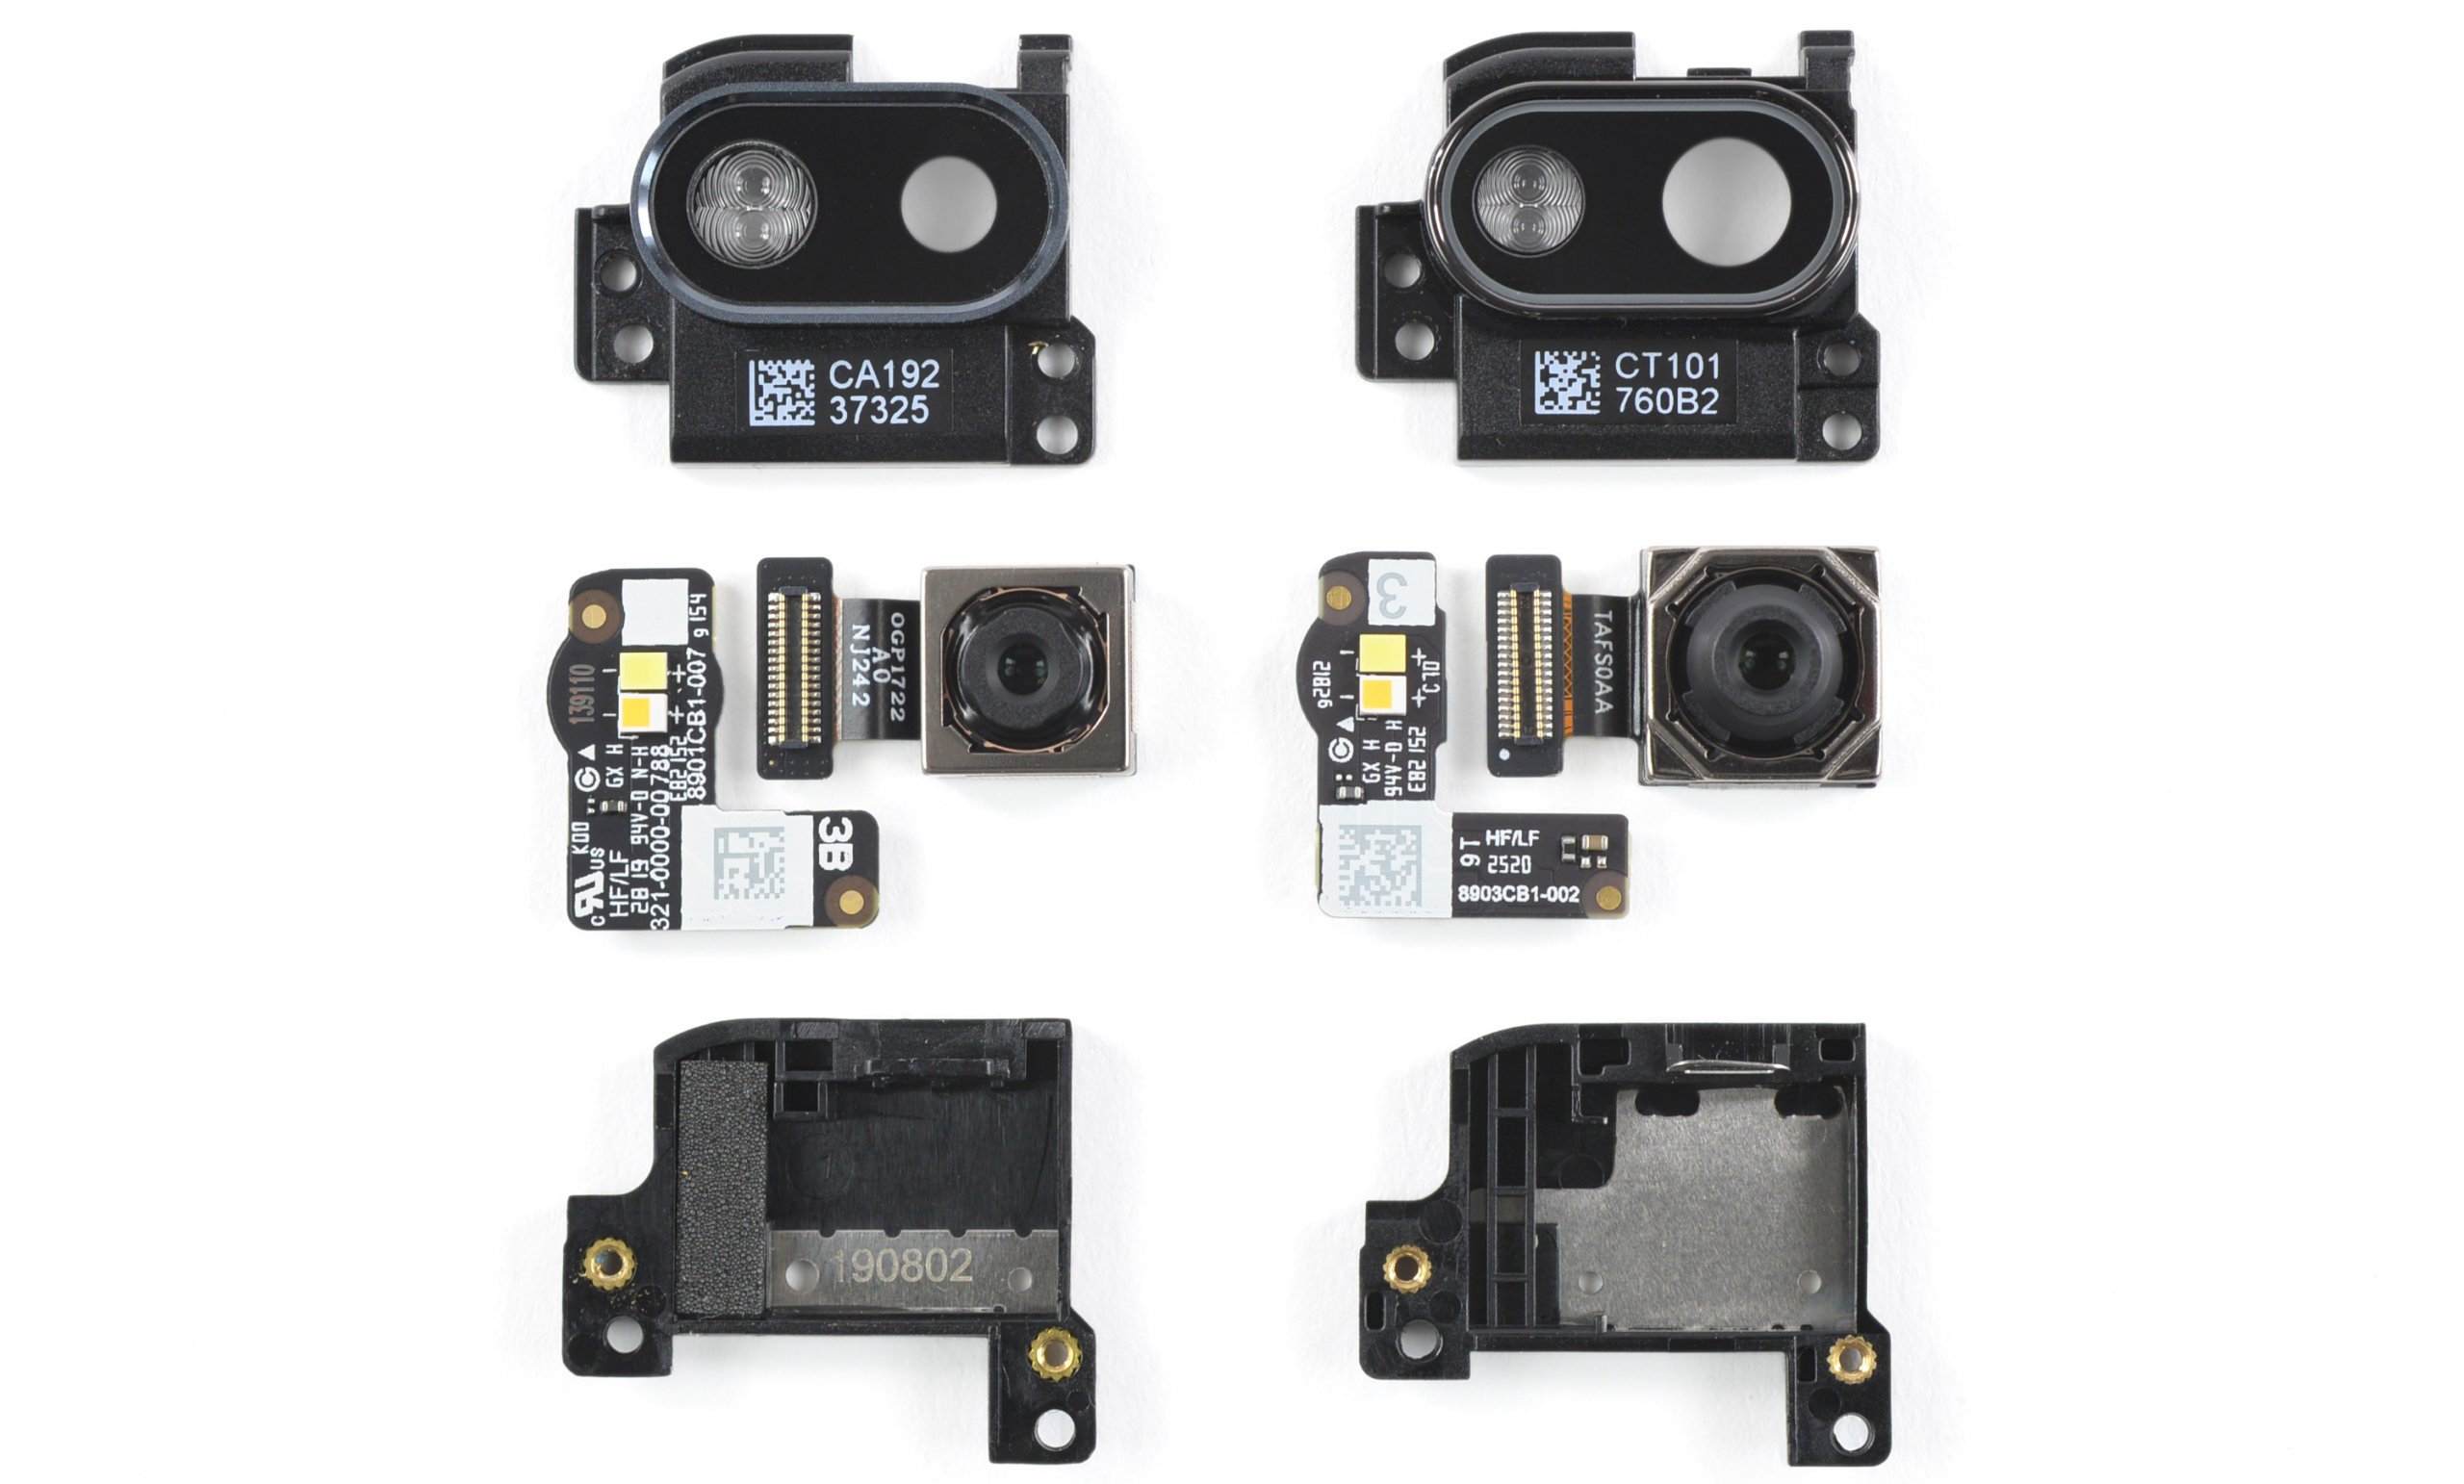 Fairphone camera modules